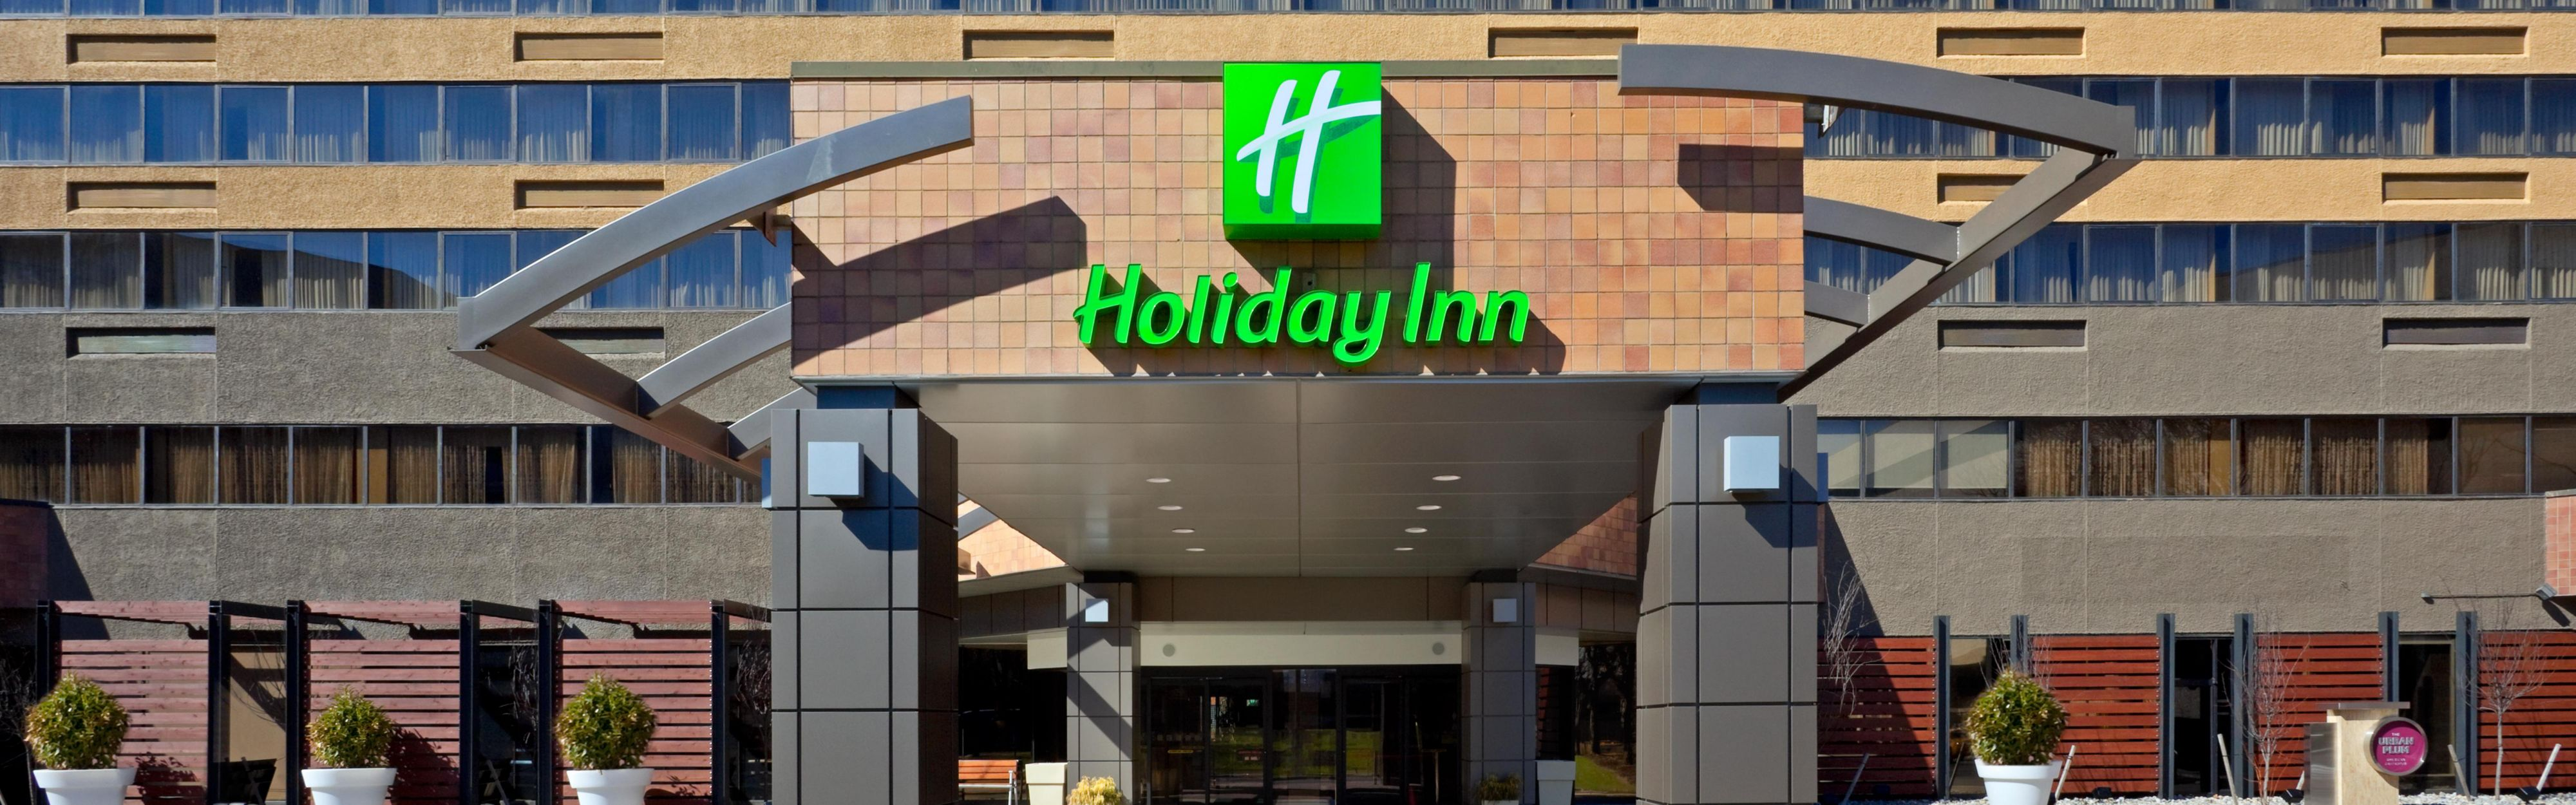 Welcome To The Holiday Inn Secaucus Meadowlands With Nj Hotels Near Train Station